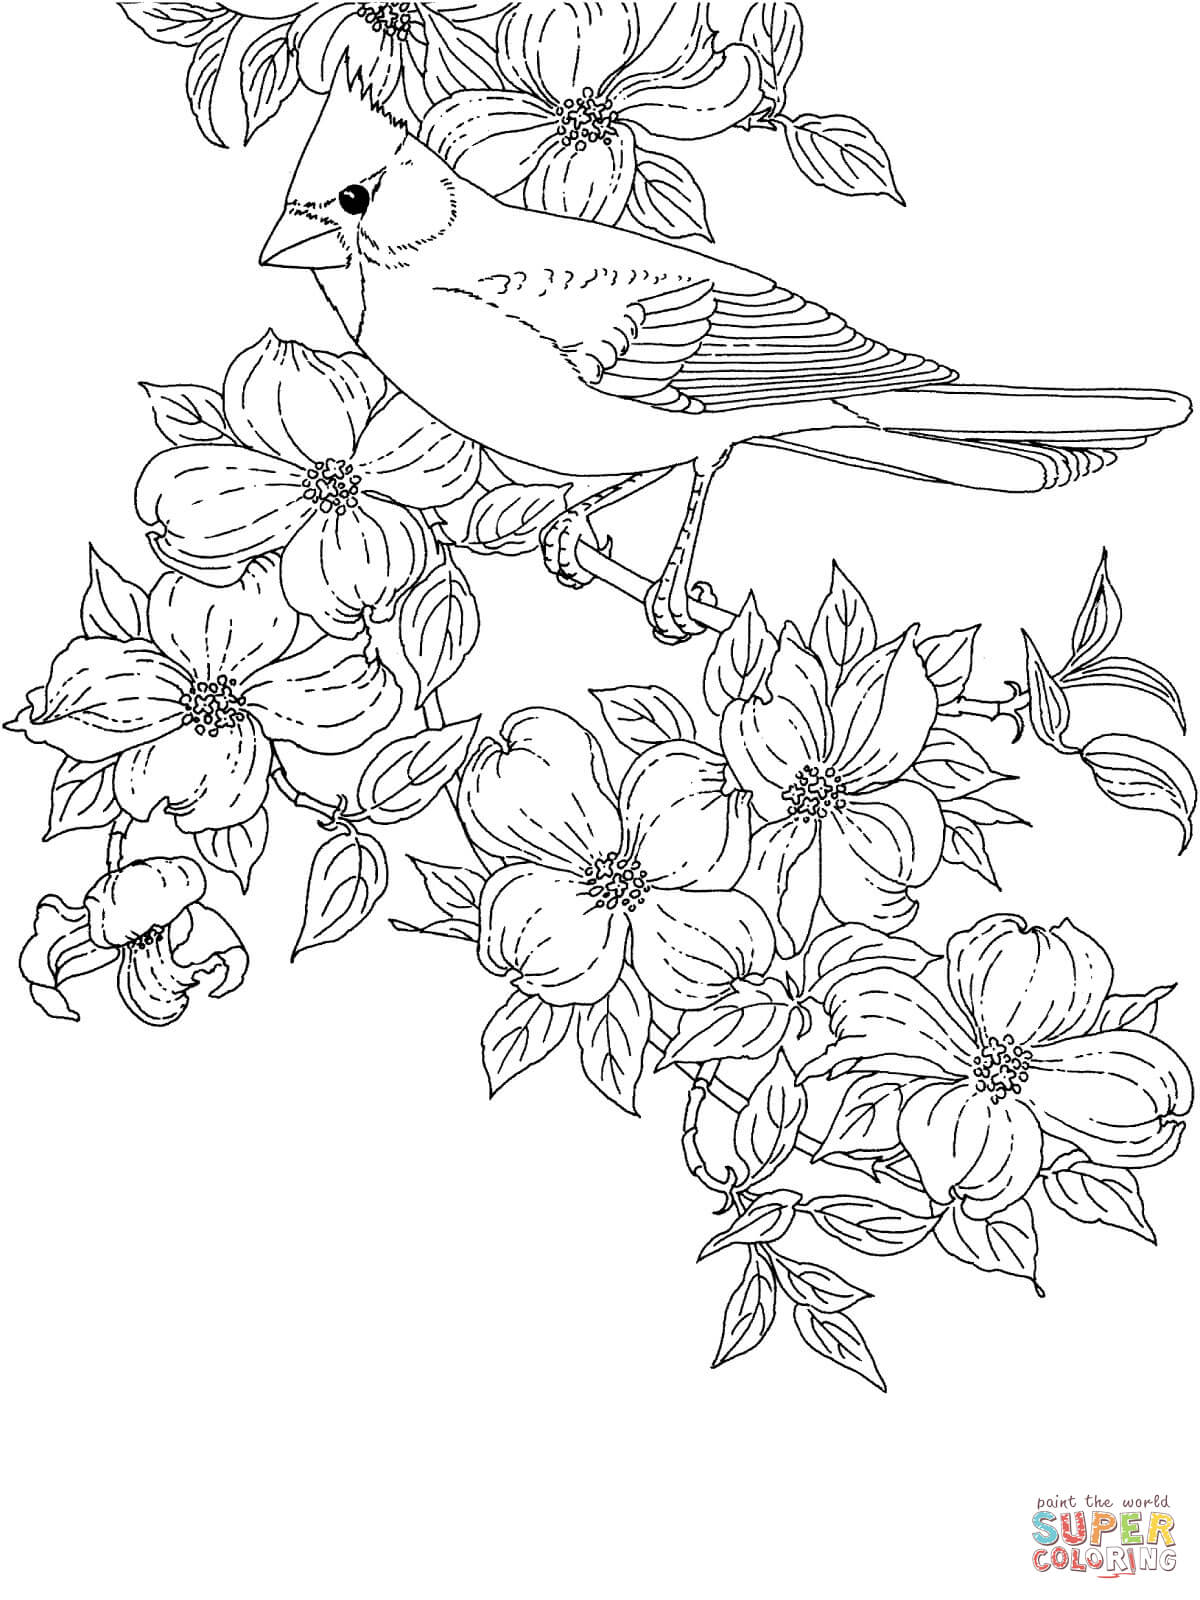 Cardinal Bird and Flowering Virginia State Flower coloring